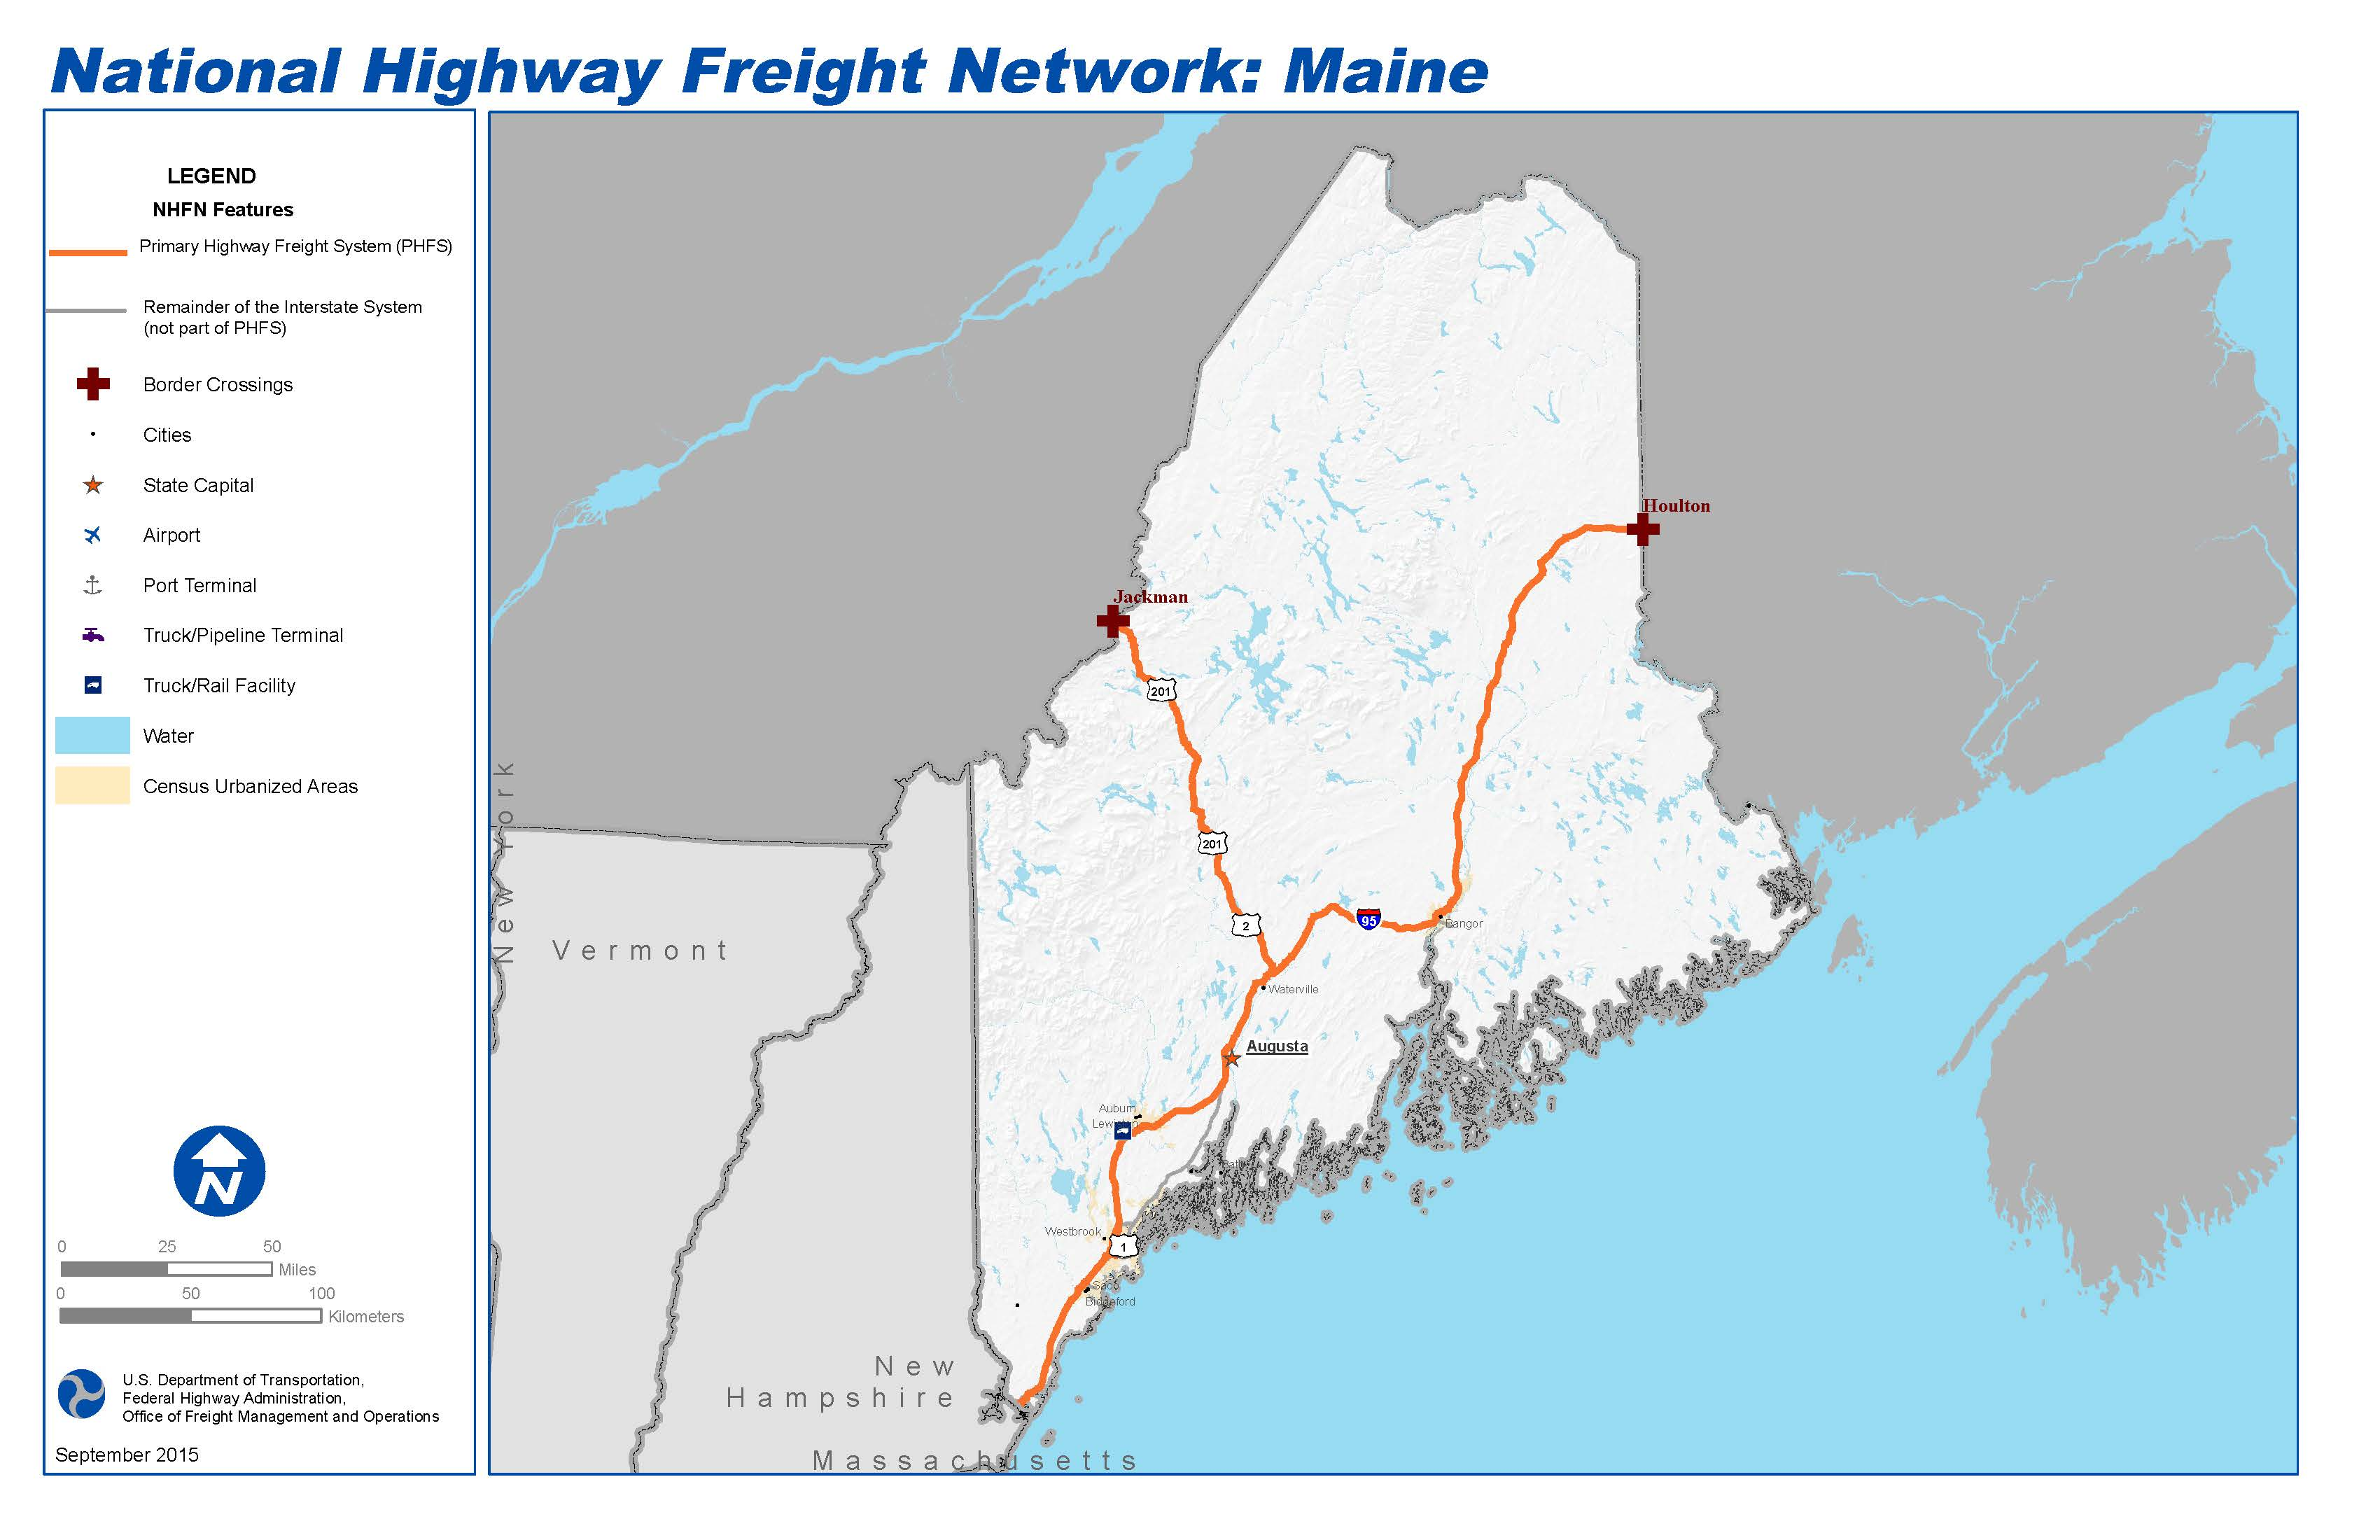 National Highway Freight Network Map And Tables For Maine FHWA - Maine cities map